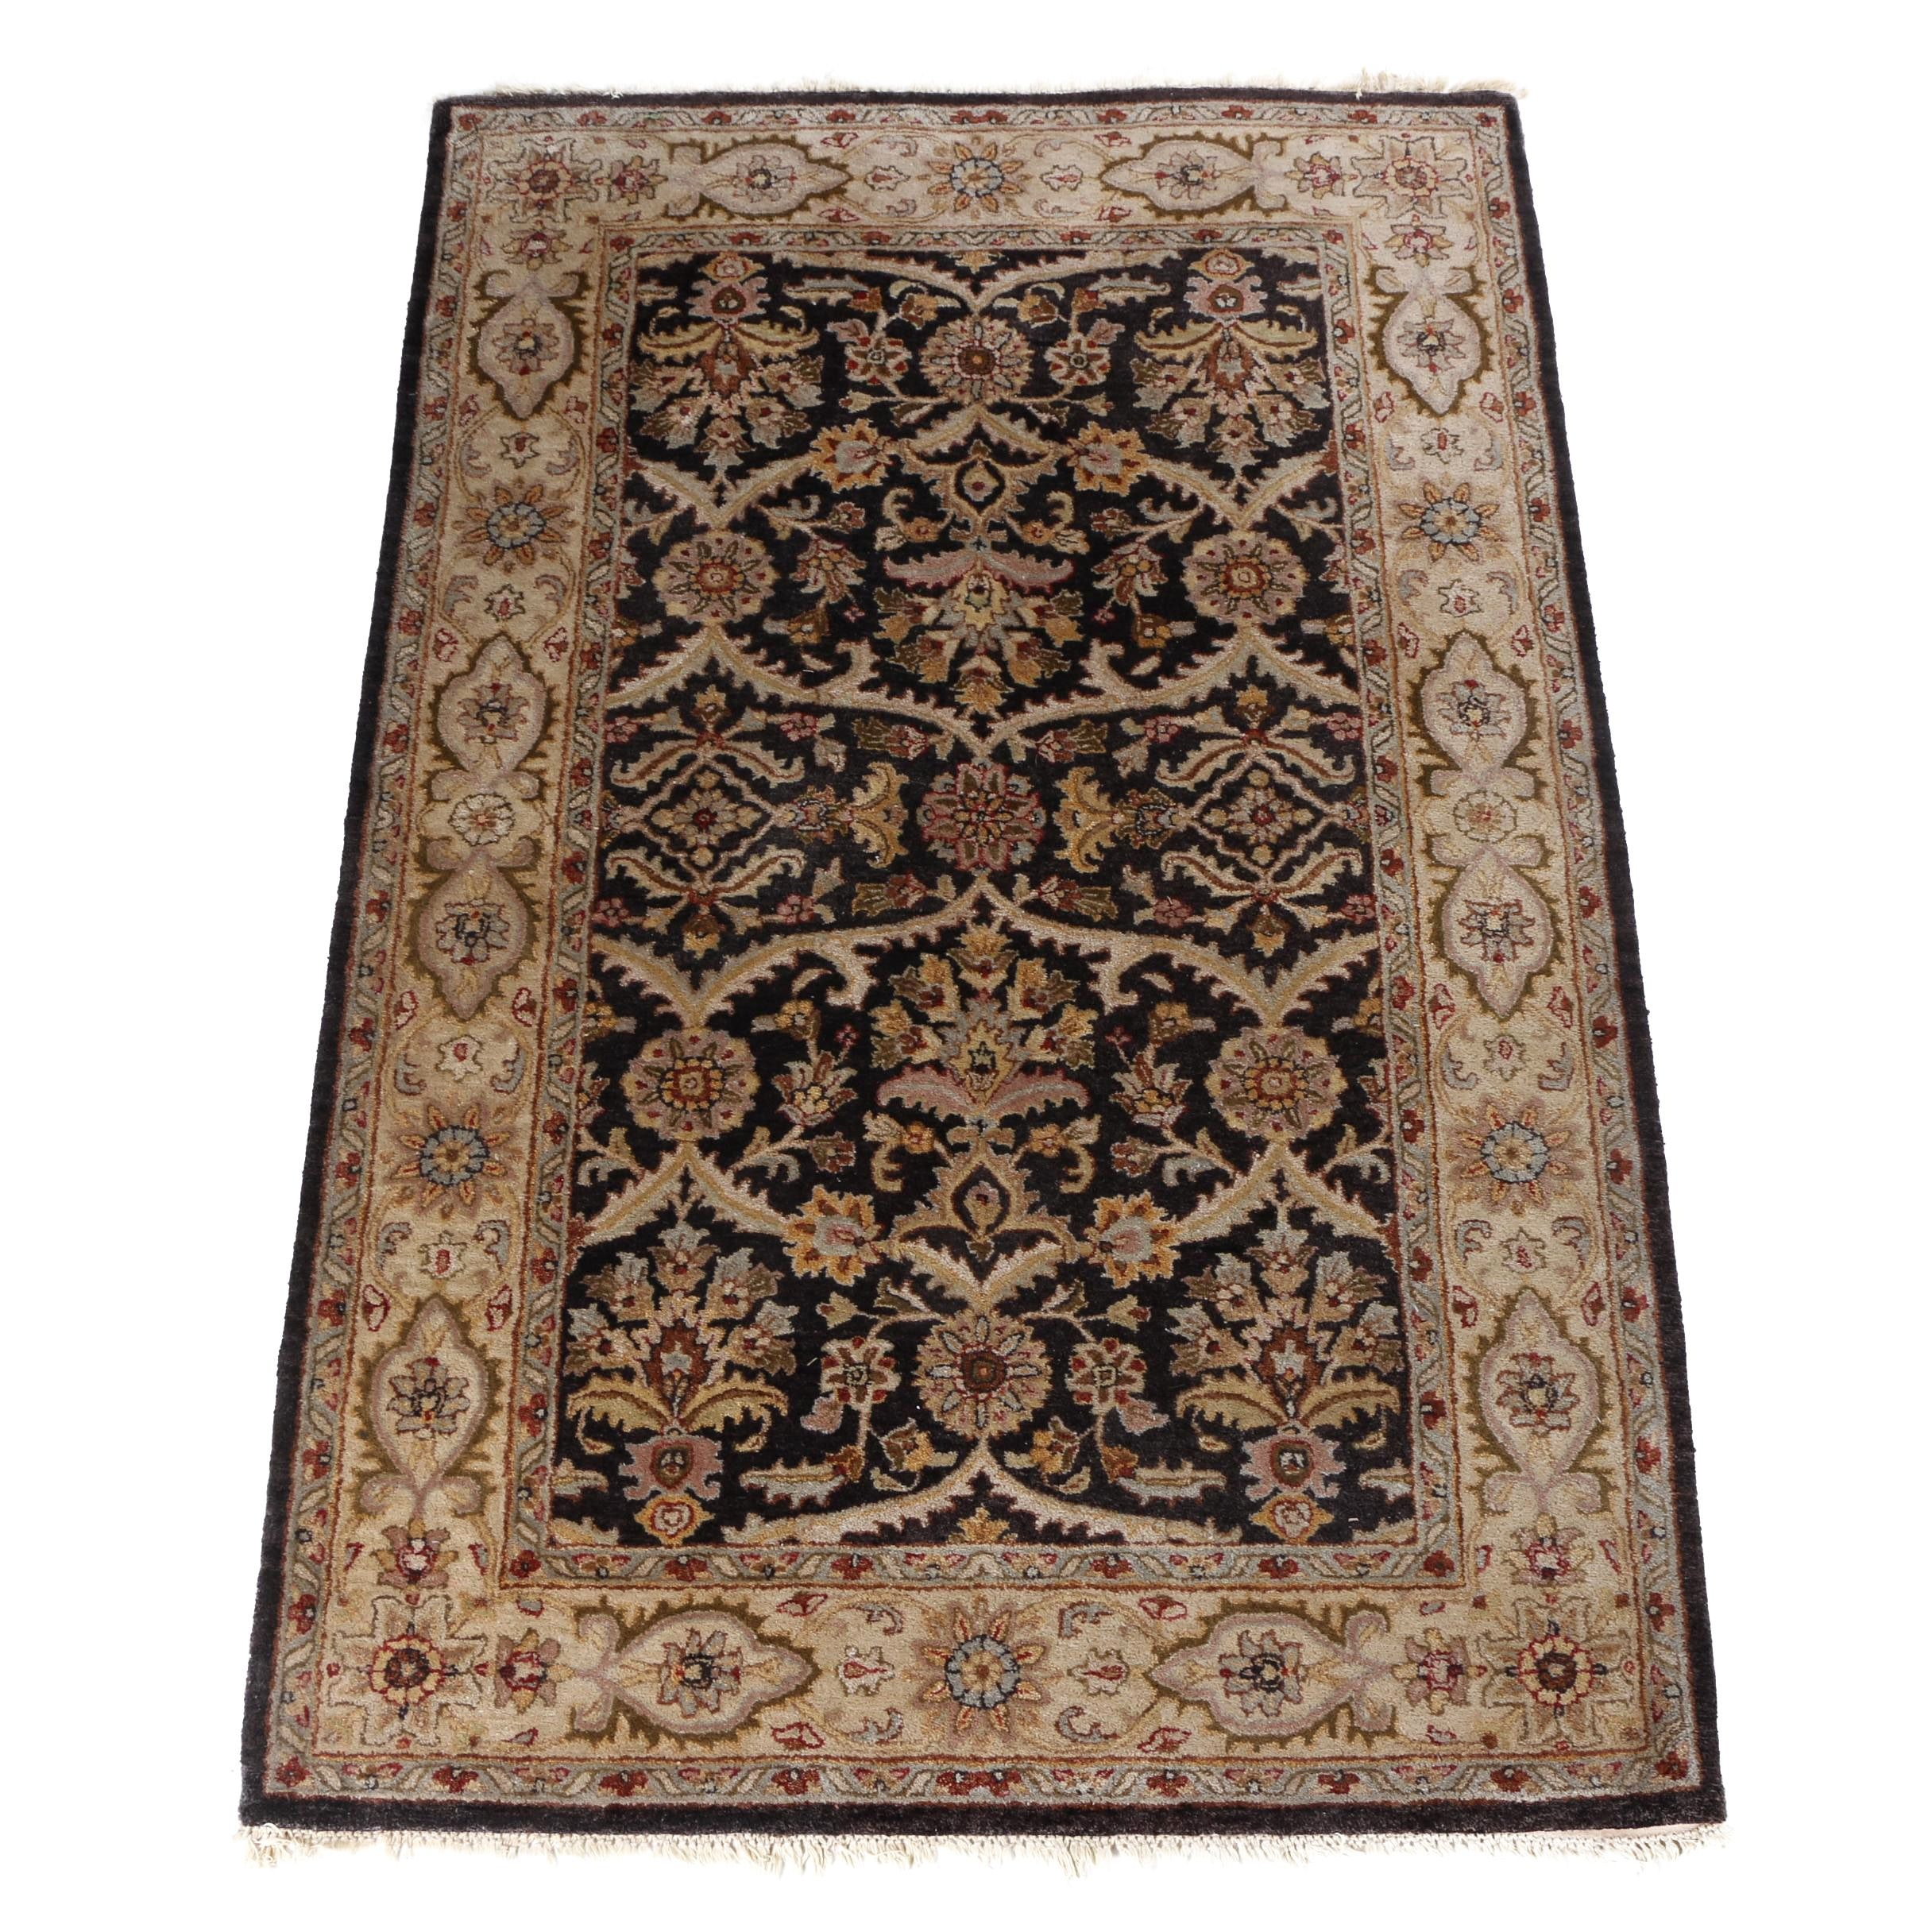 Hand-Tufted Persian-Inspired Feizy Wool Area Rug